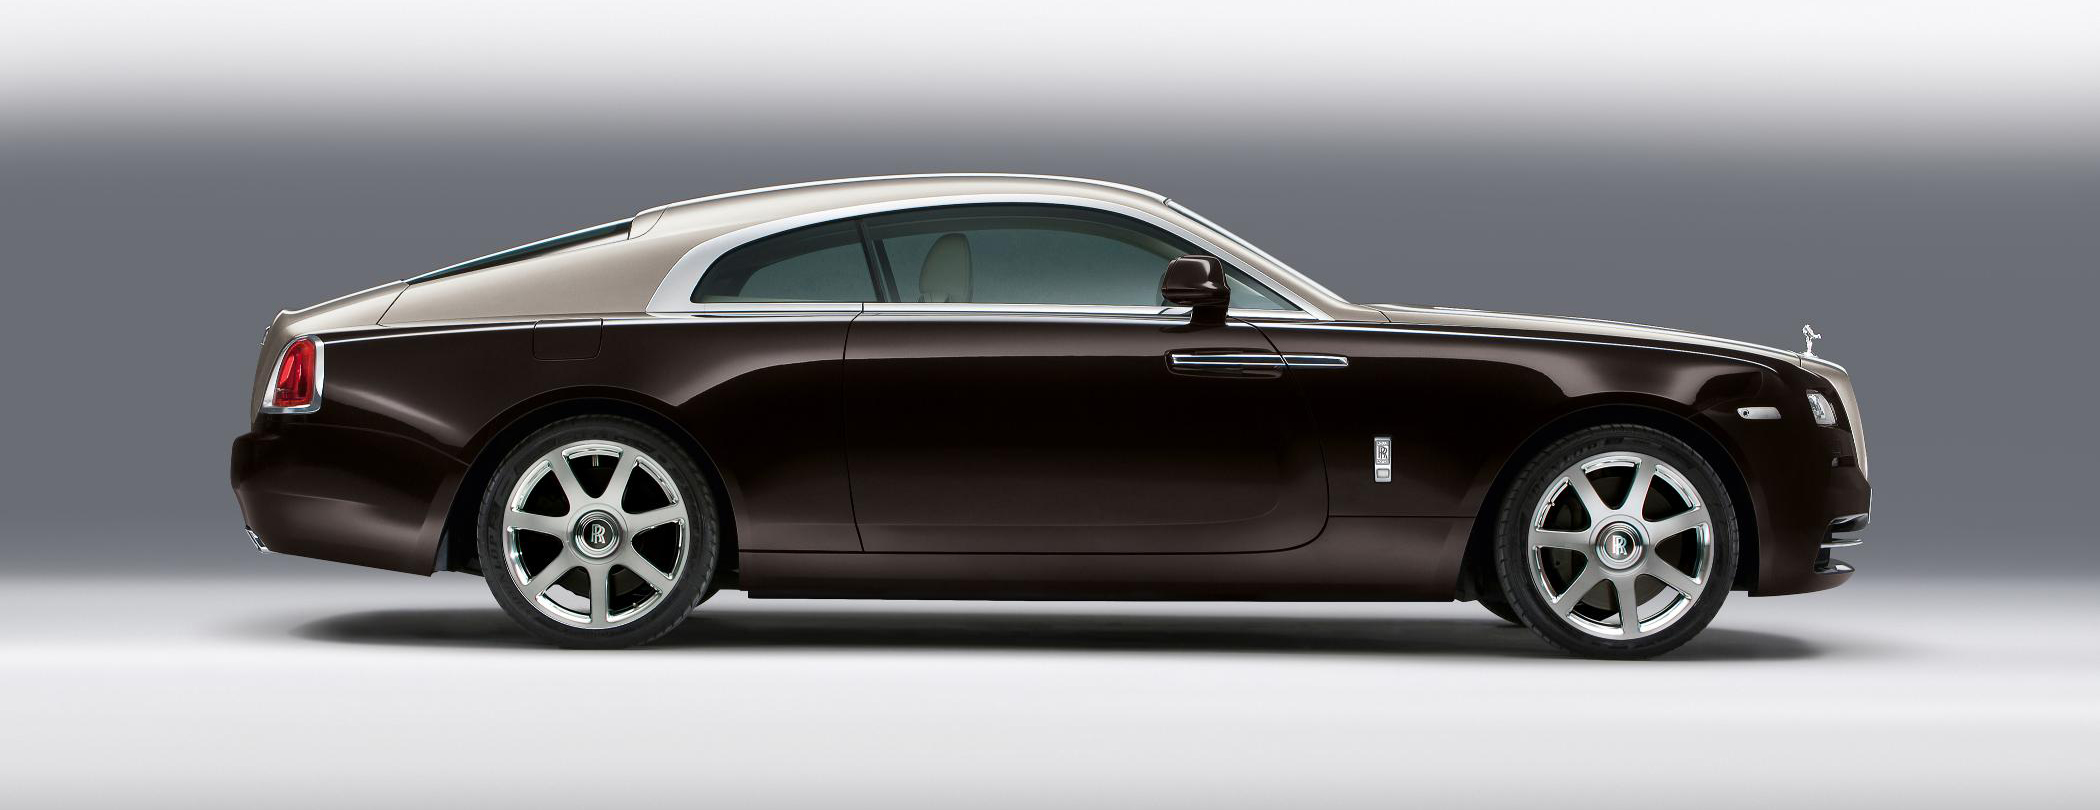 Rolls Royce Wraith Video Review Rolls-royce Wraith Review 2013